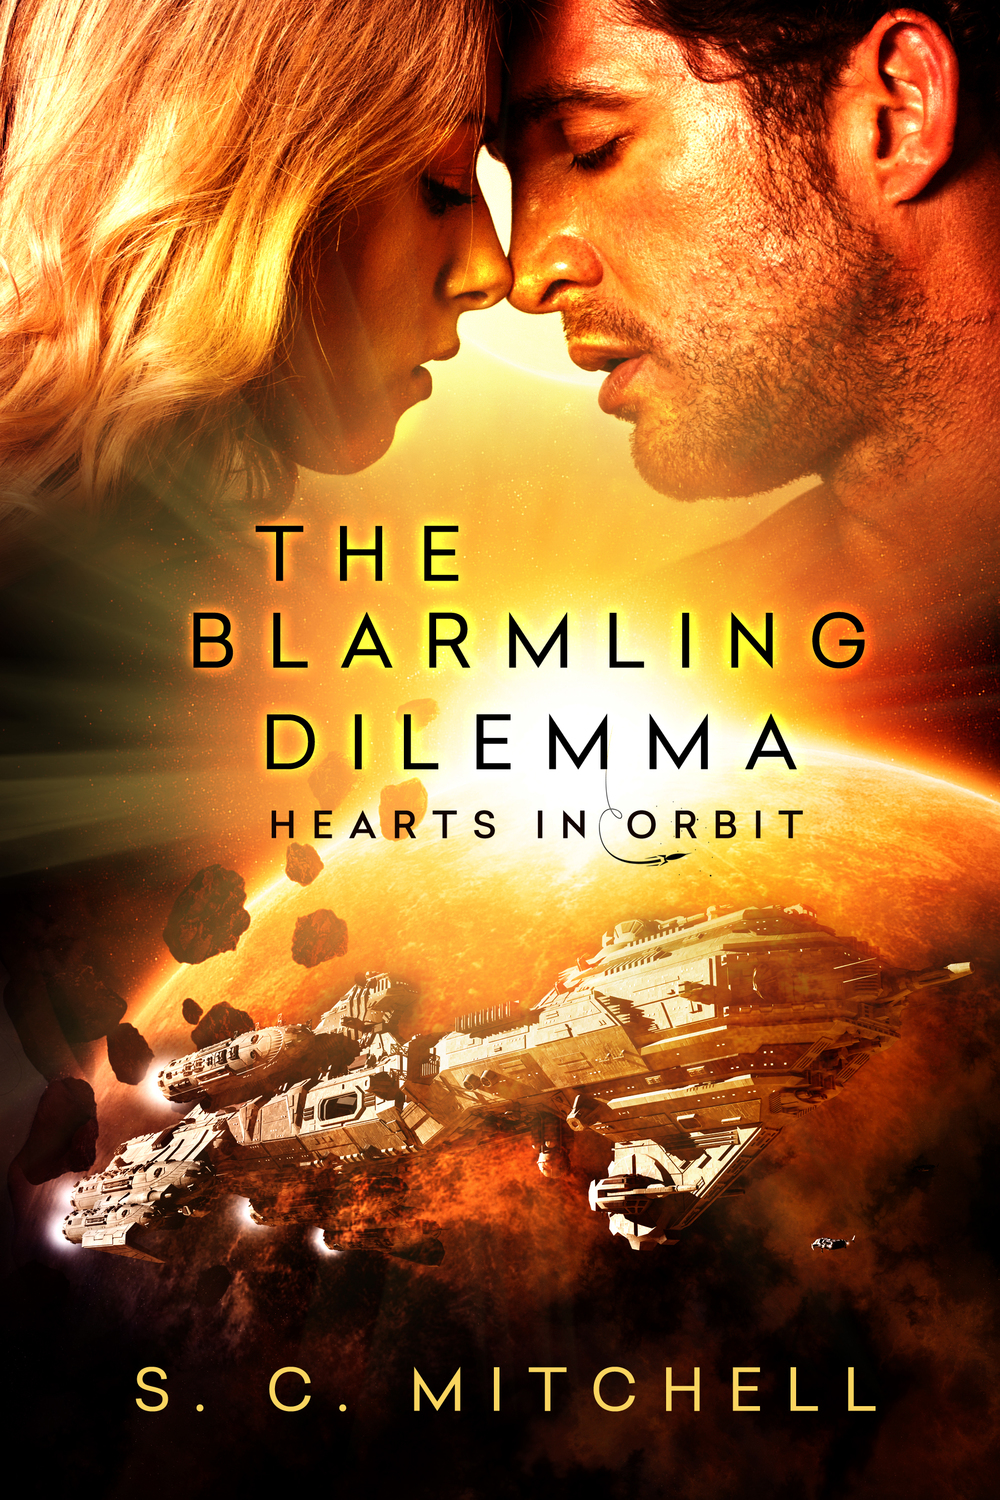 The Blarmling Dilemma by S.C. Mitchell